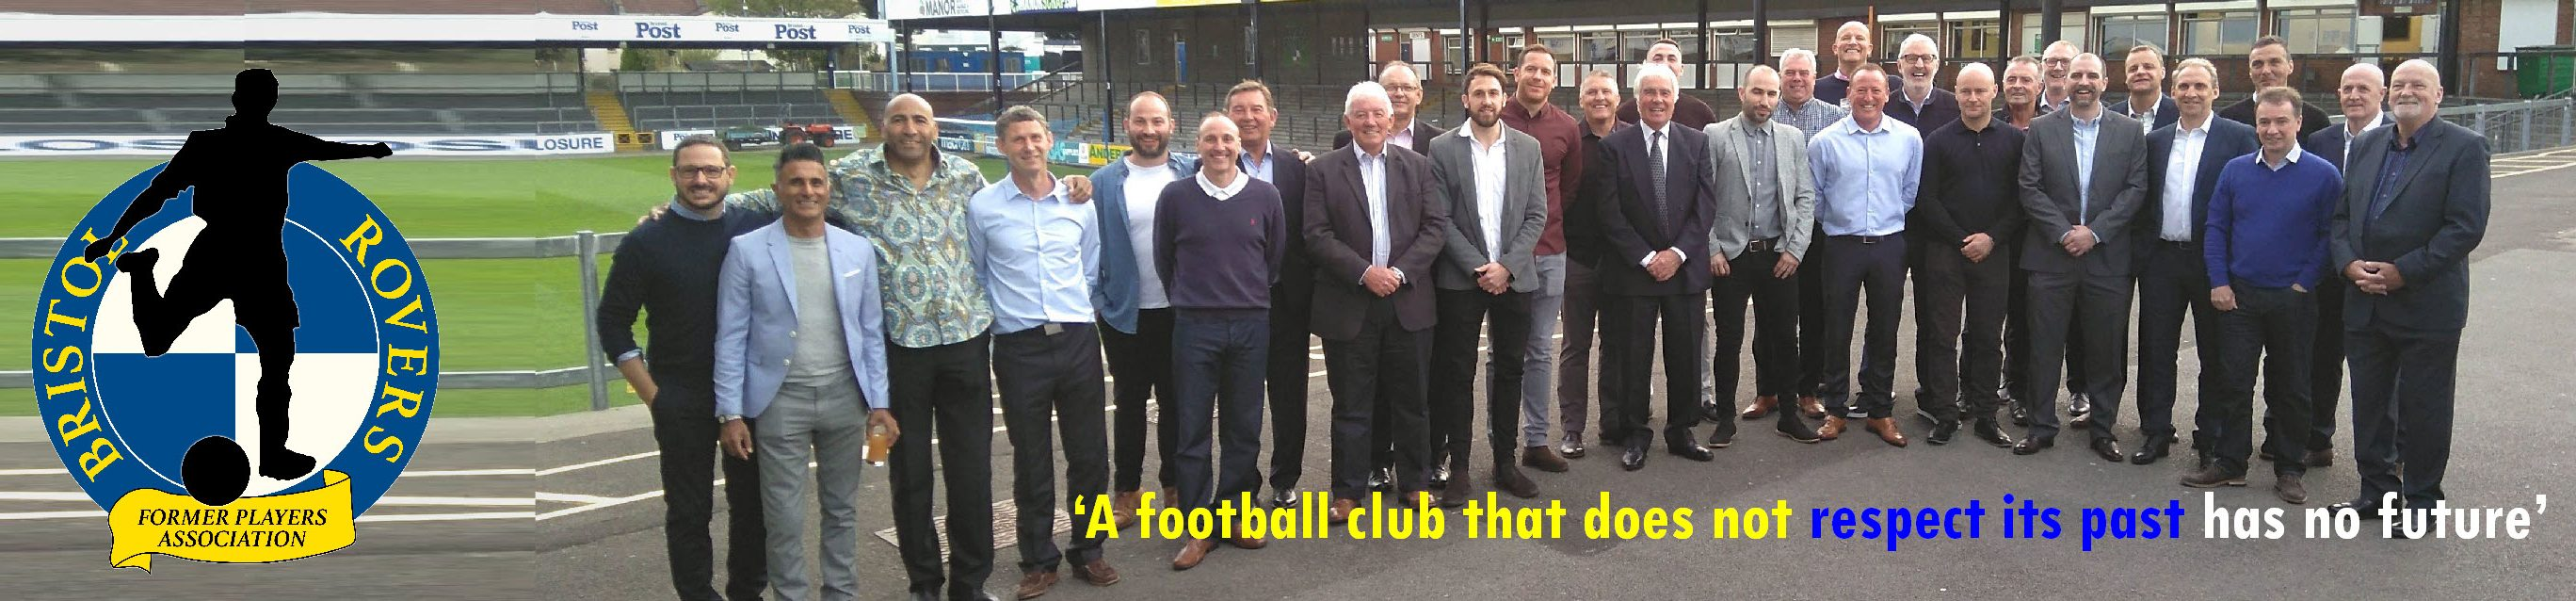 Bristol Rovers Former Players Association (BRFPA)